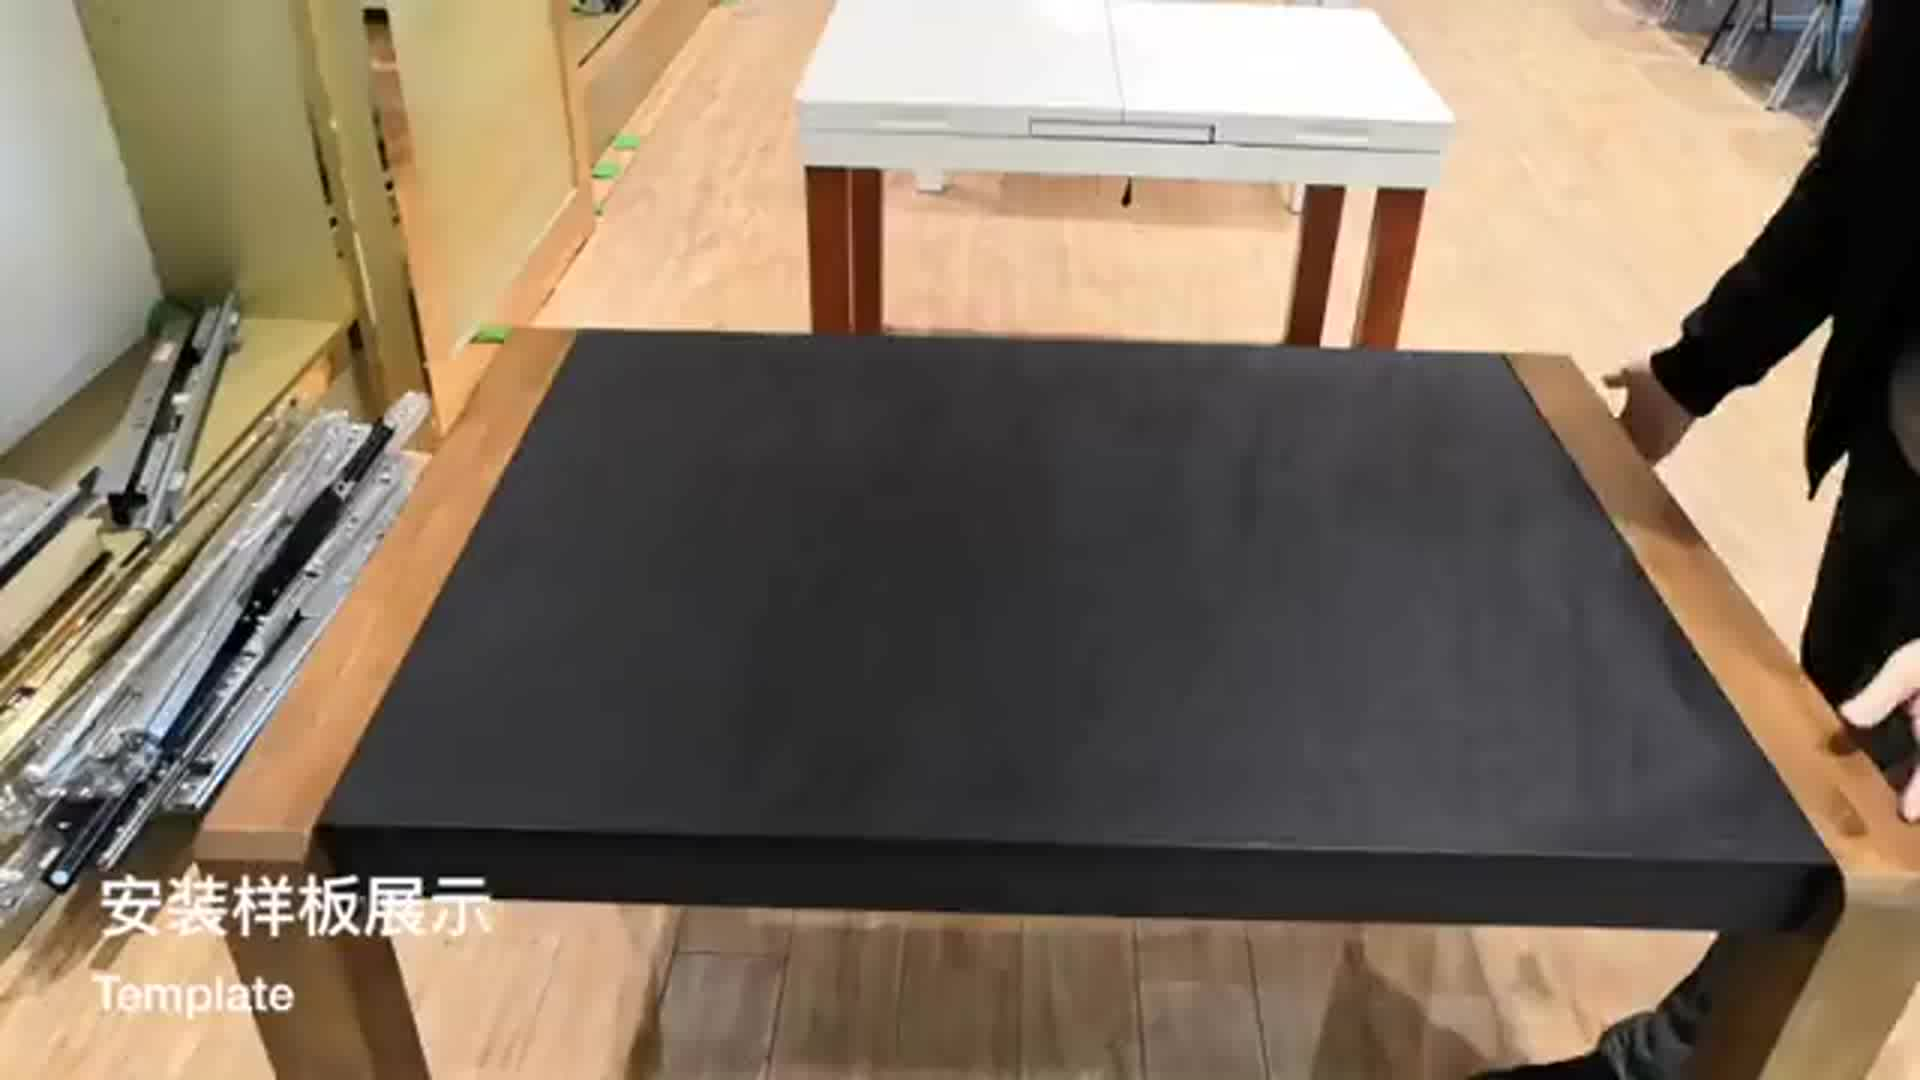 Heavy-duty steel ball bearing sliding extension mechanism for dining table